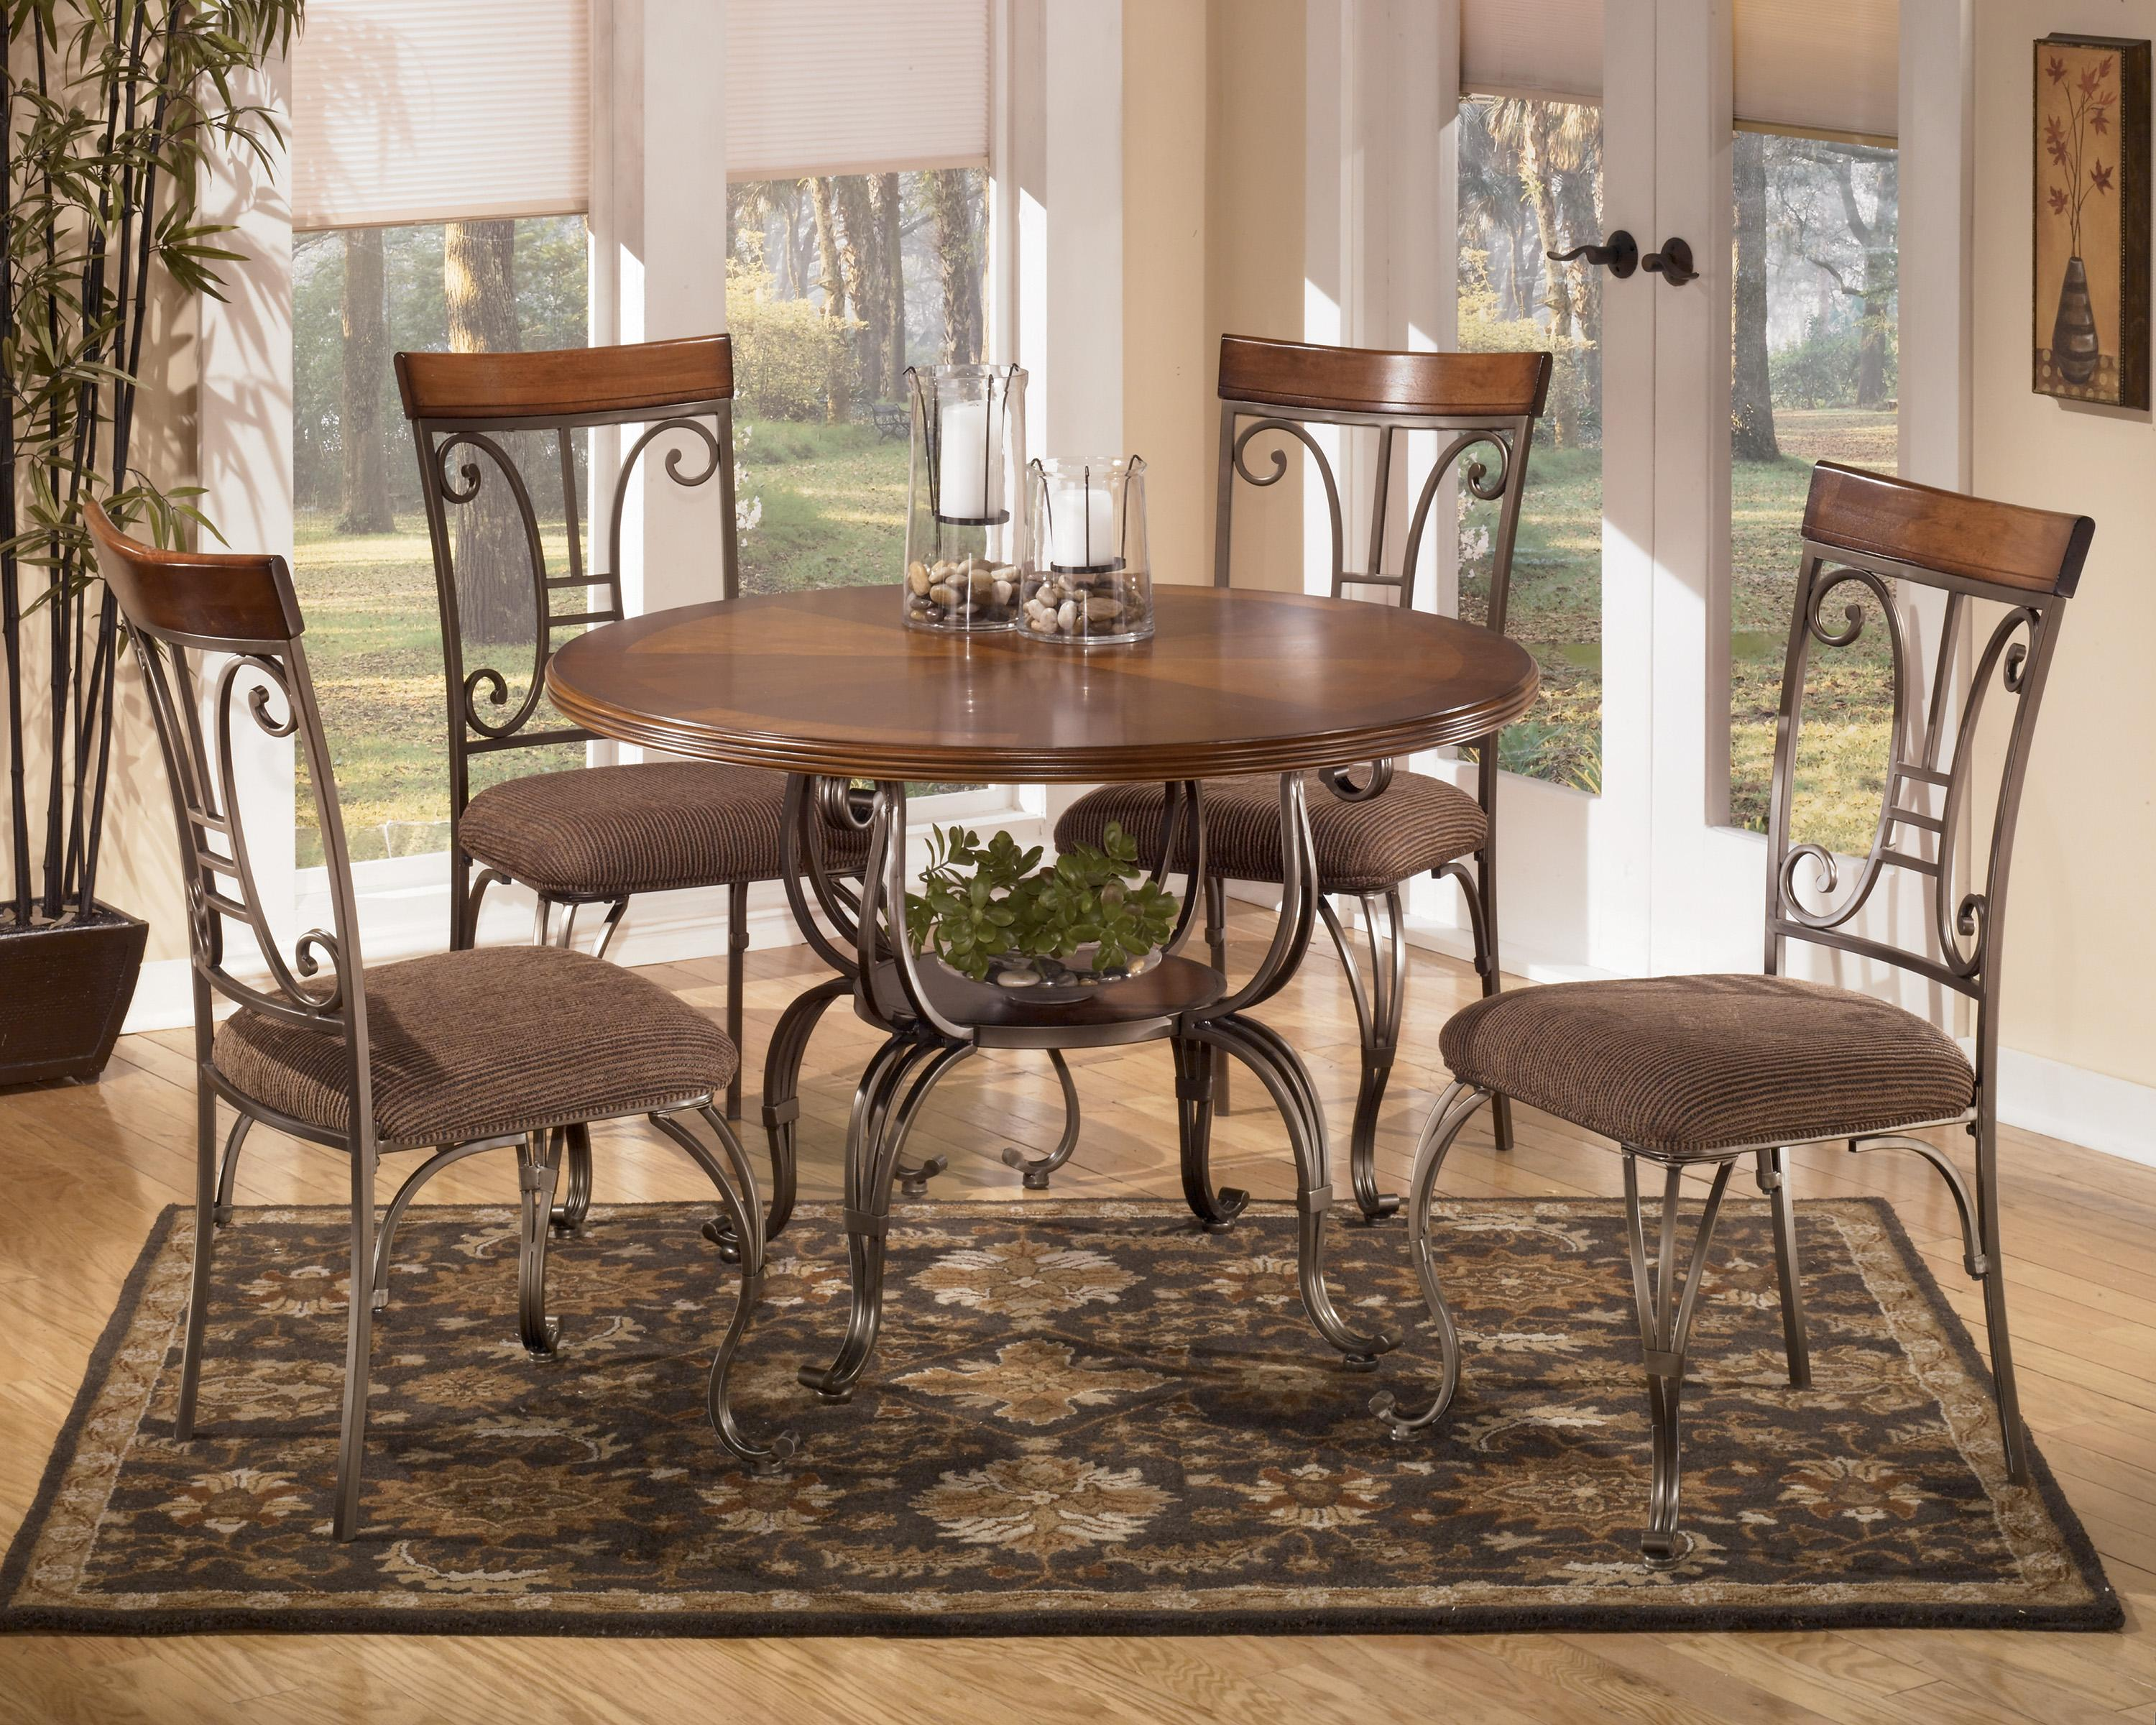 Ashley Furniture Kitchen Table And Chairs Signature Design By Ashley Furniture Plentywood 5 Piece Round